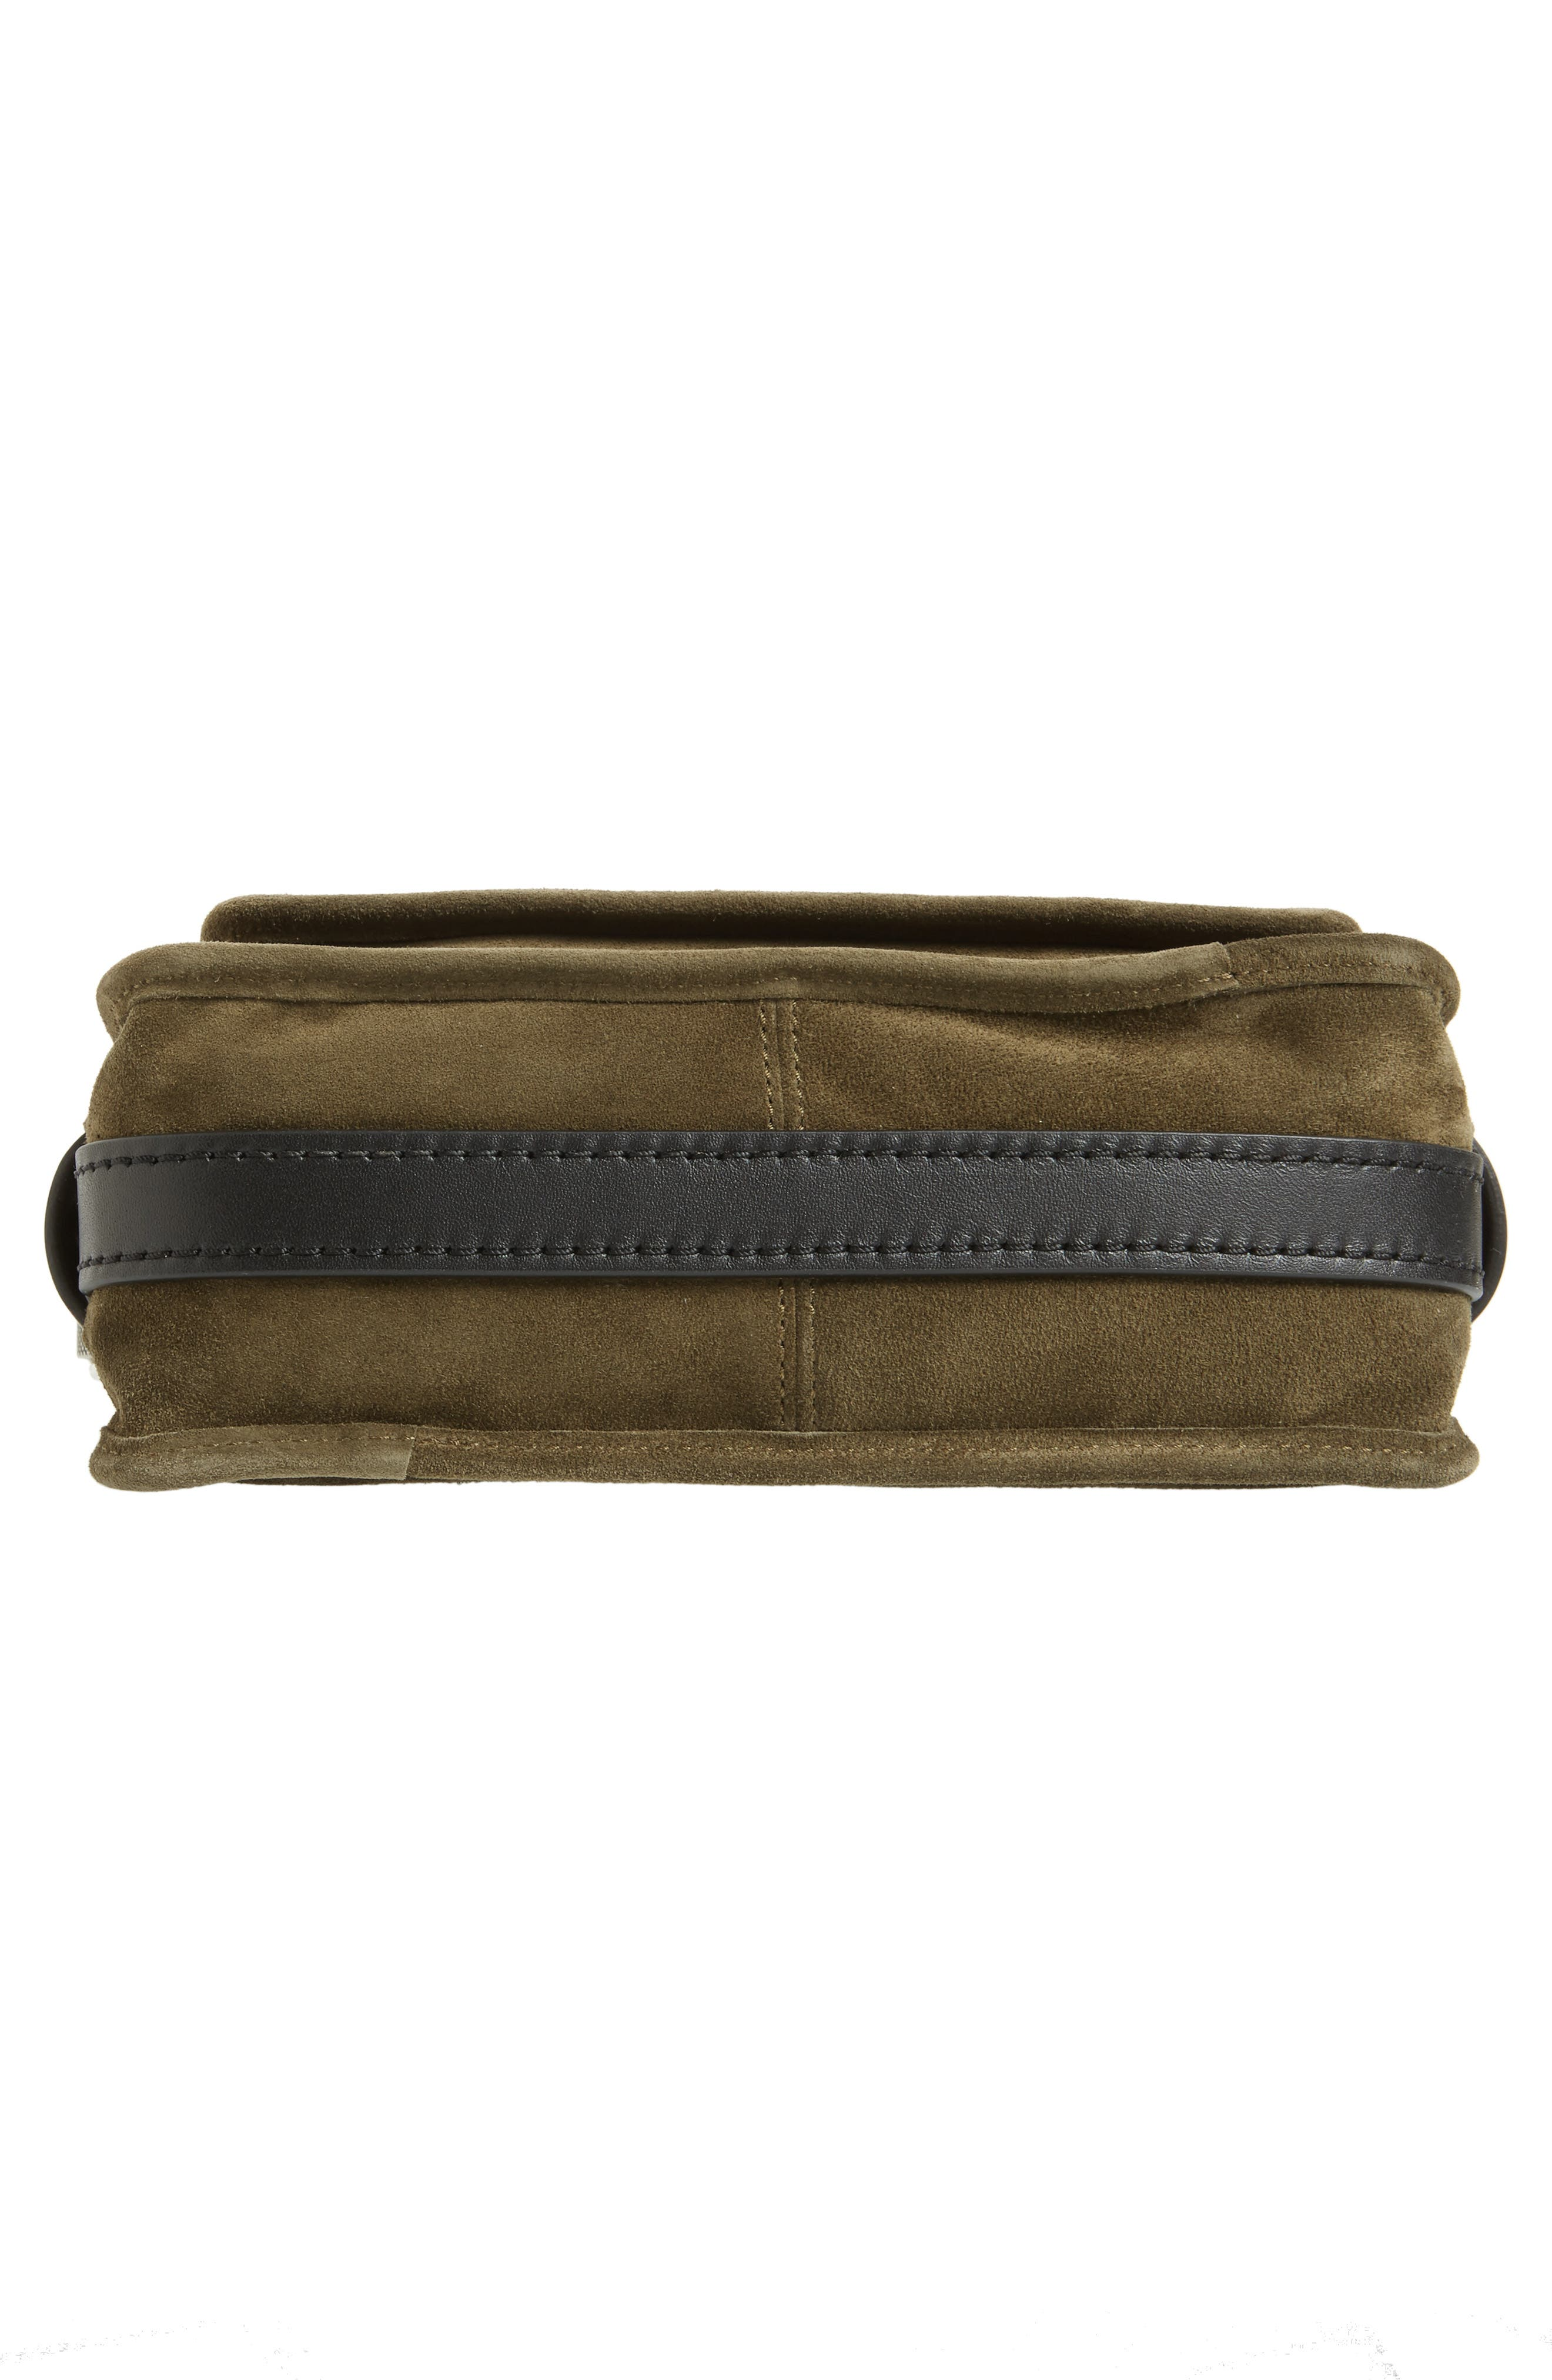 Small Leather Field Messenger Bag,                             Alternate thumbnail 6, color,                             393